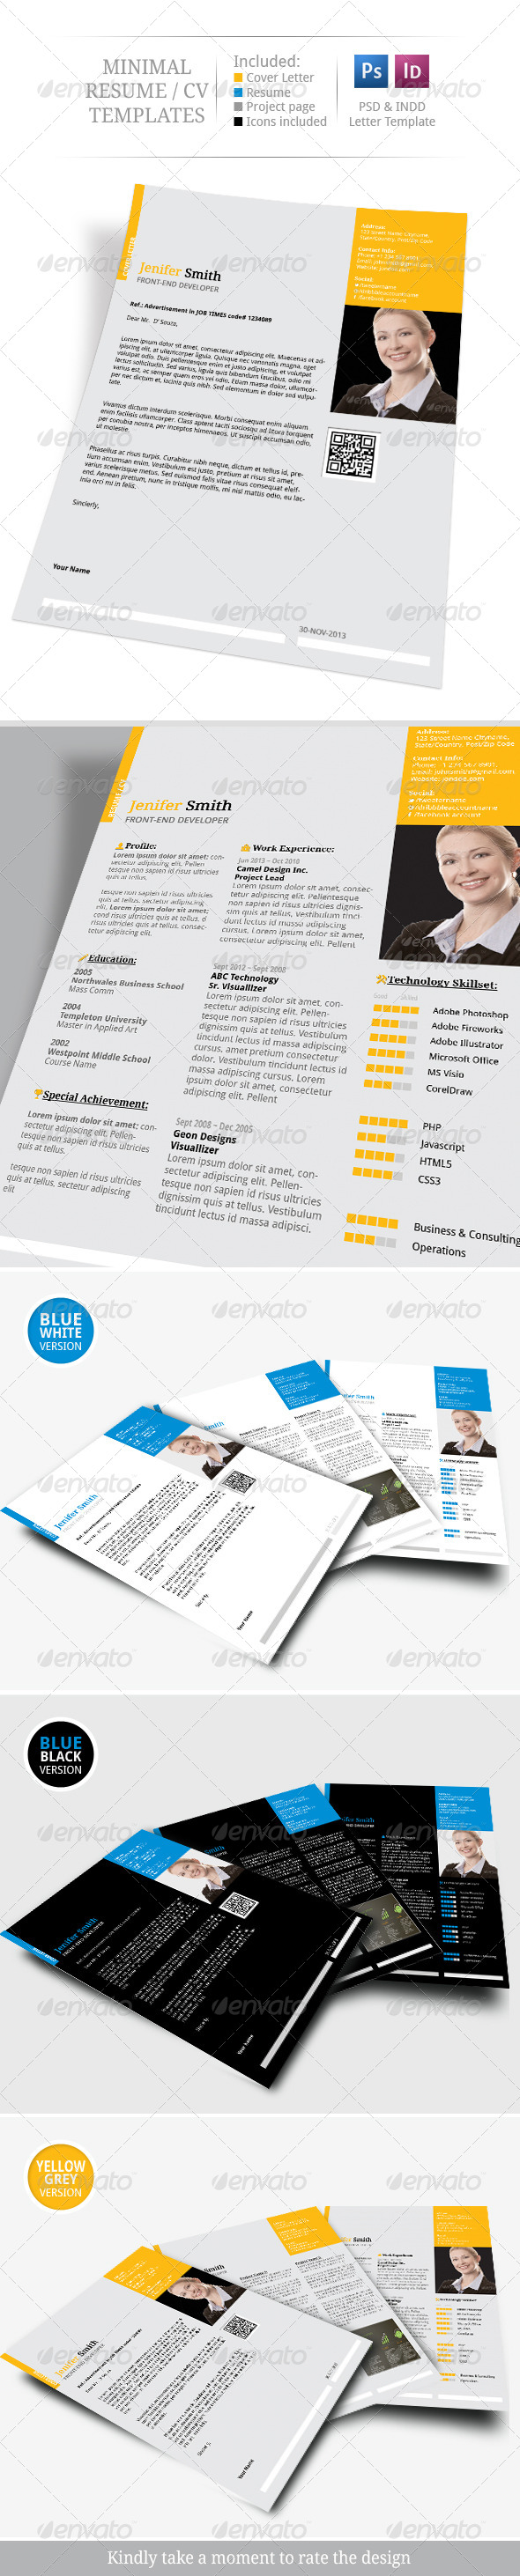 GraphicRiver Minimal Resume CV Set 6251758